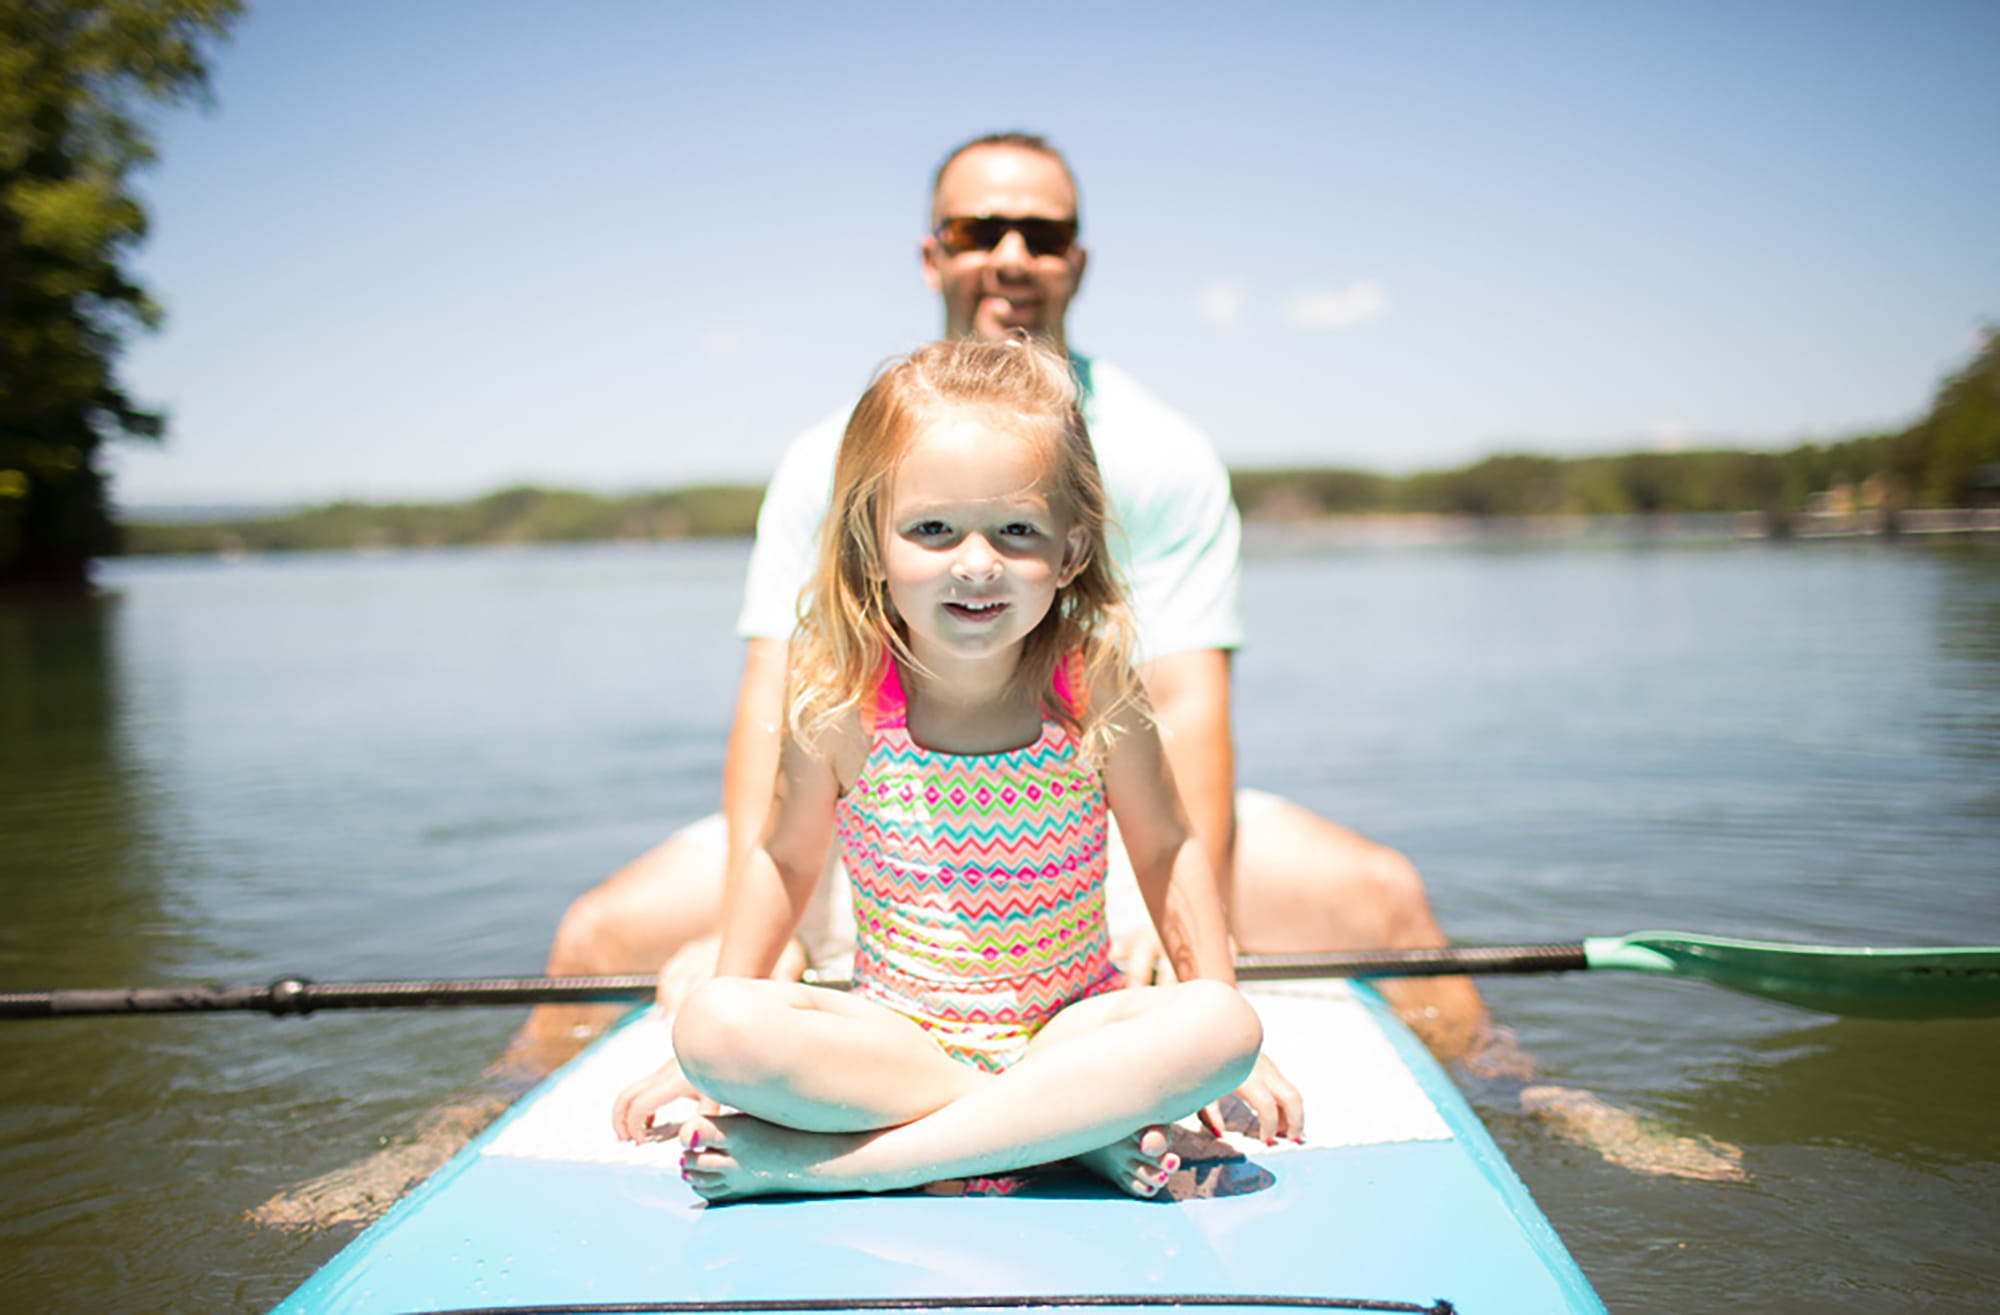 Father and daughter paddleboarding on the lake